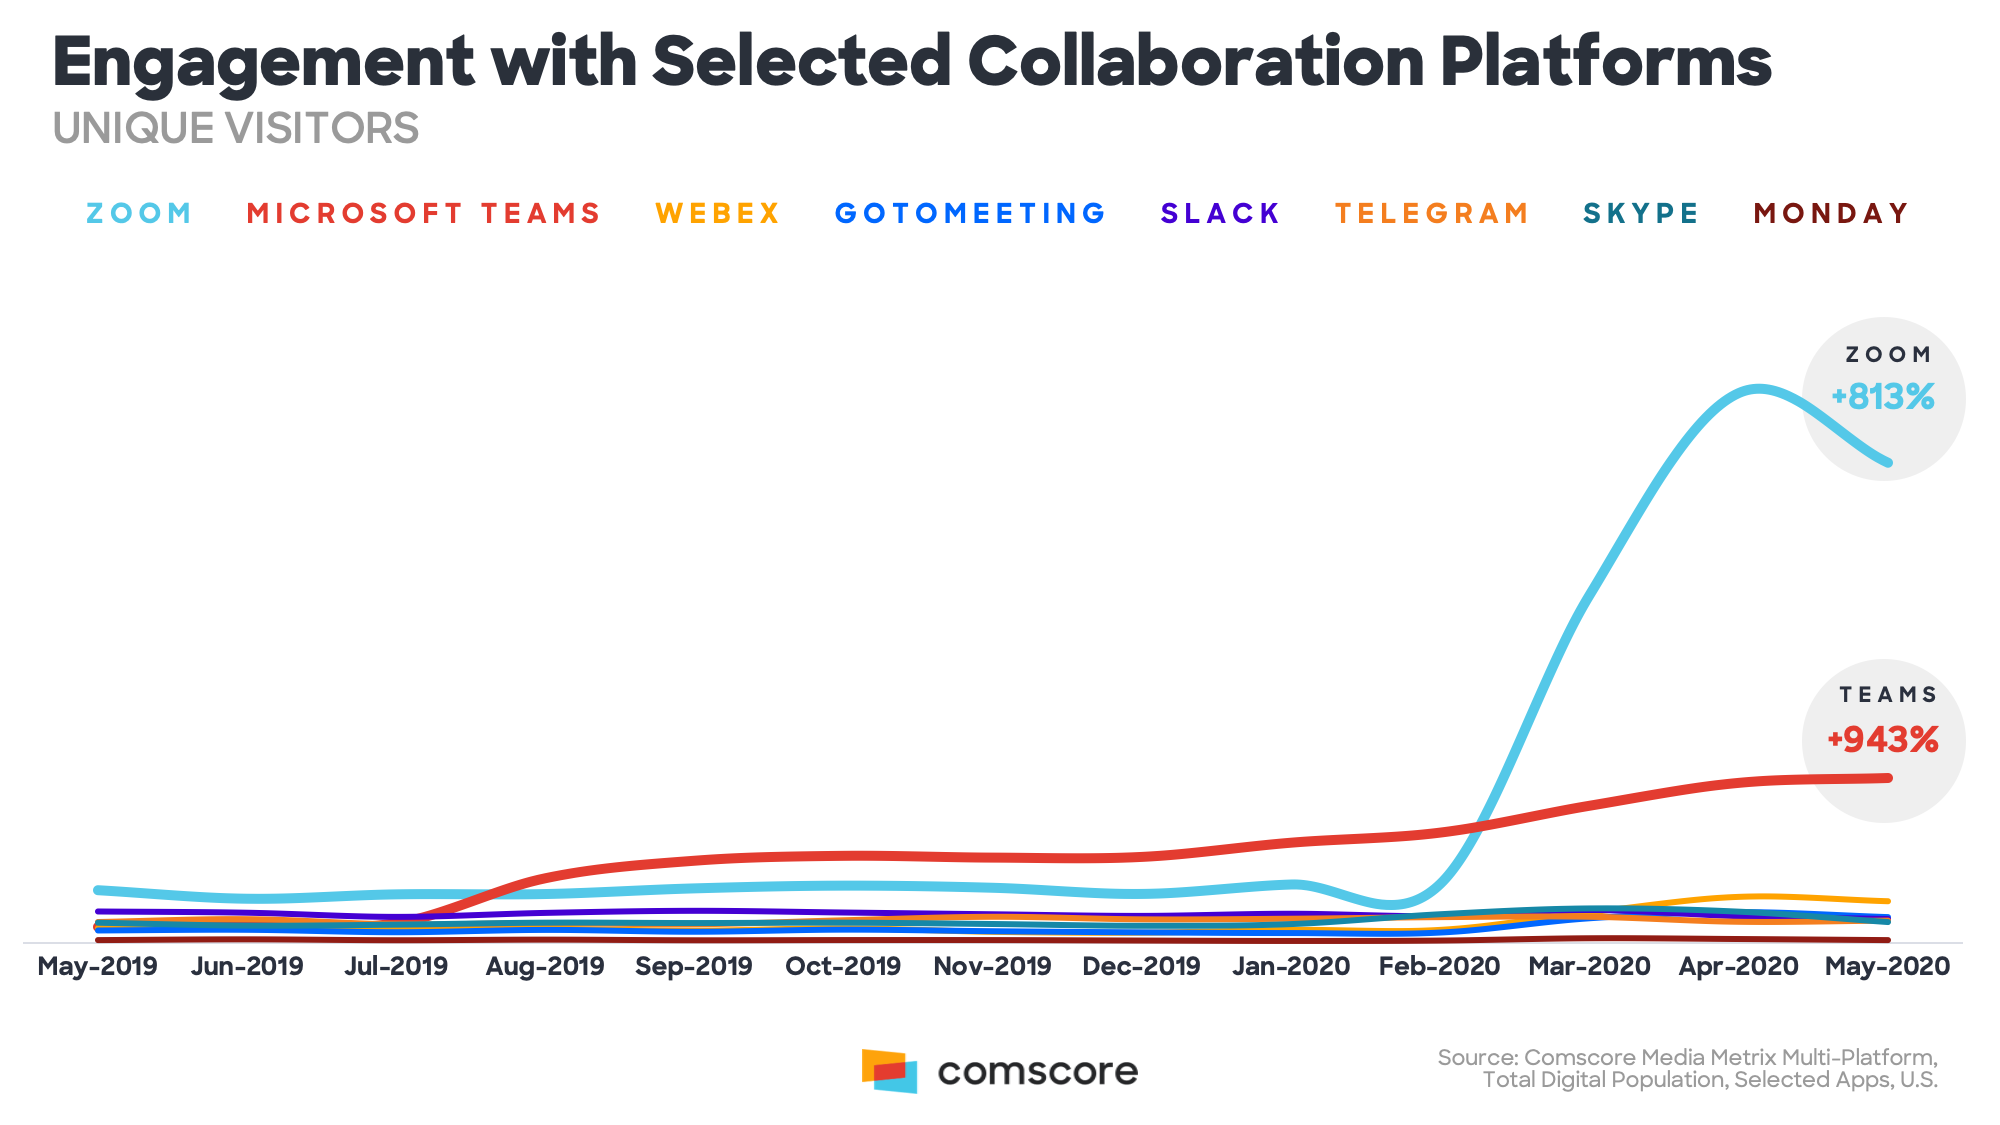 Engagement with Selected Collaboration Platforms